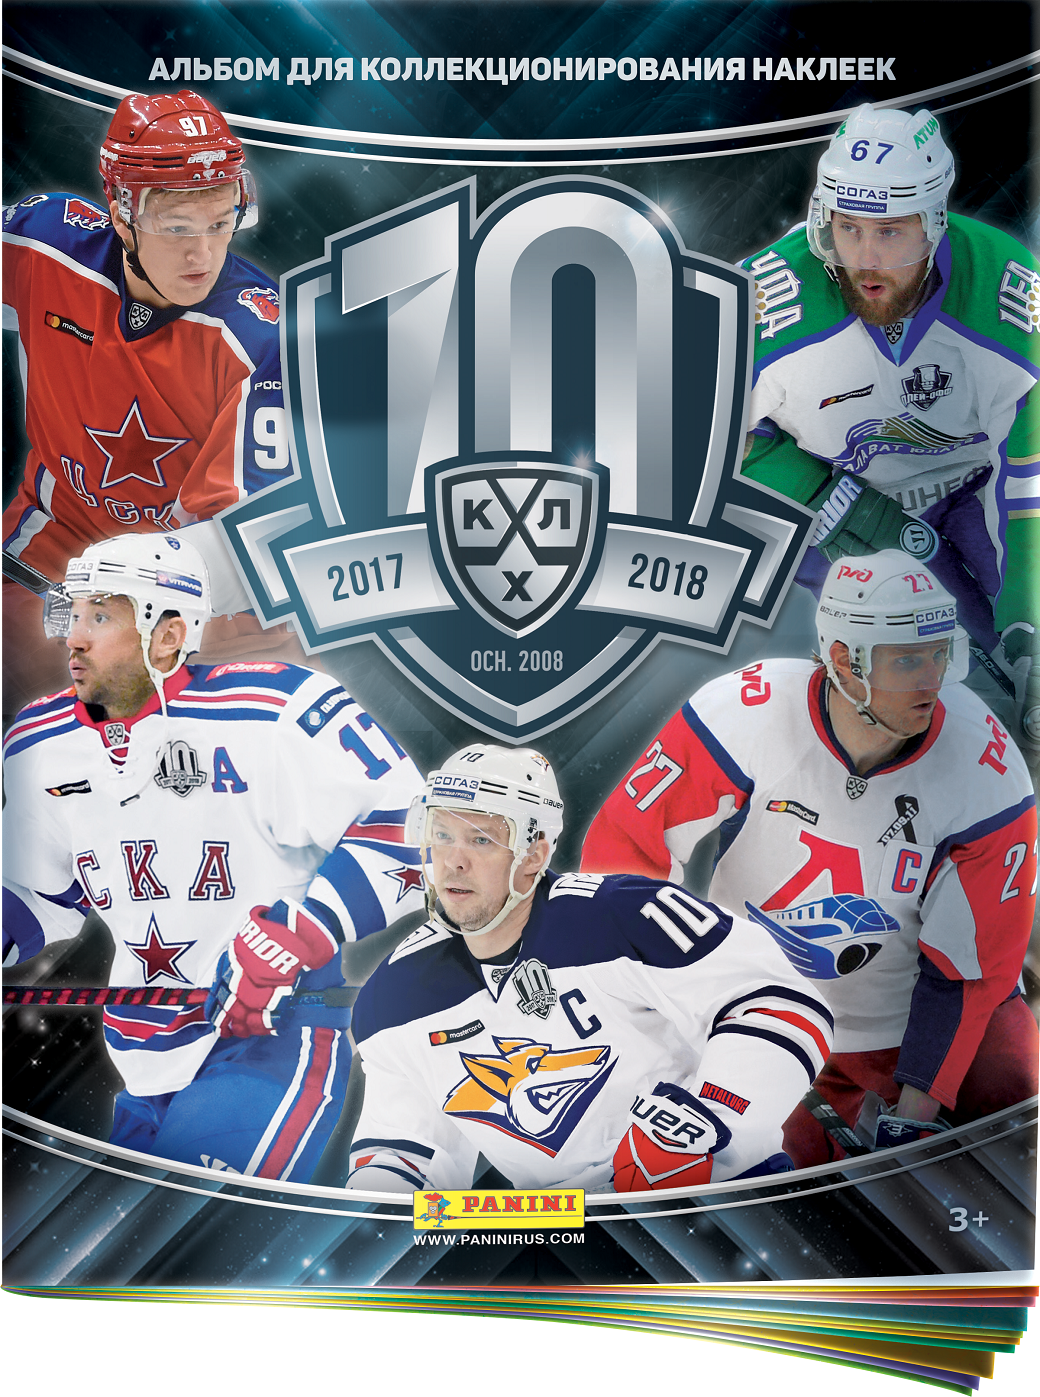 KHL_cover_render.png